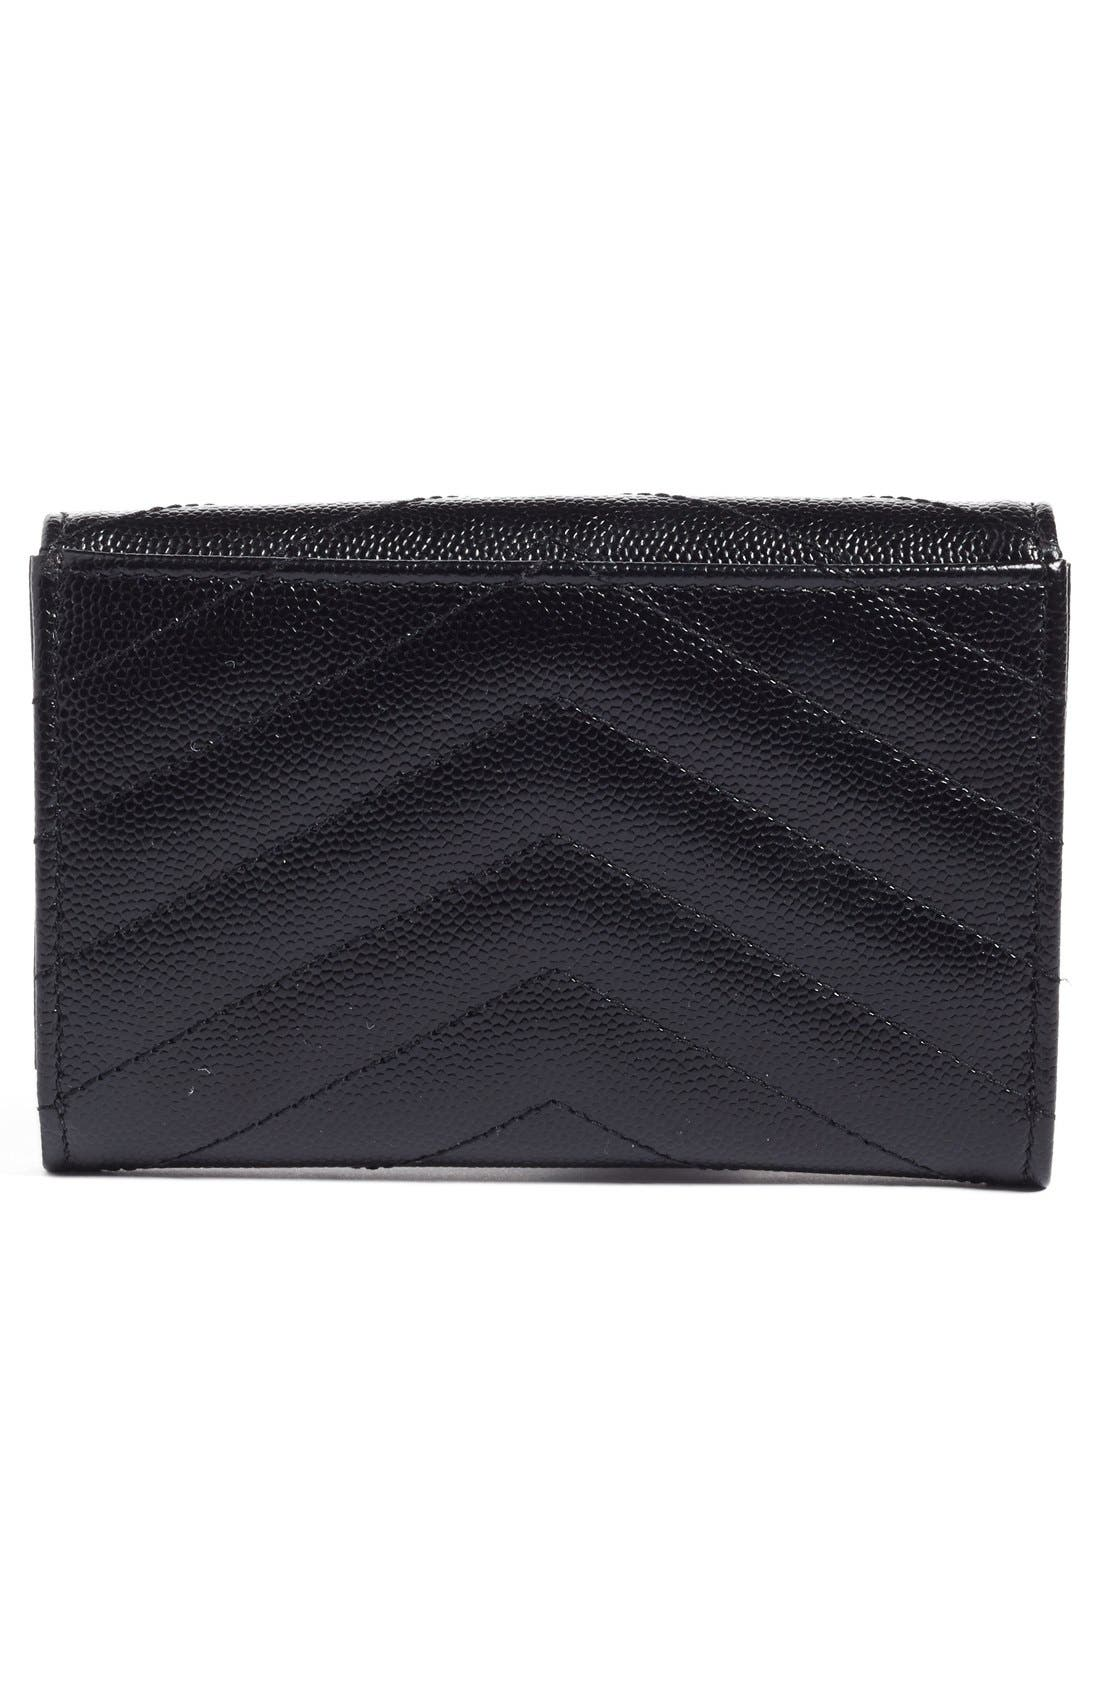 'Small Monogram' Leather French Wallet,                             Alternate thumbnail 30, color,